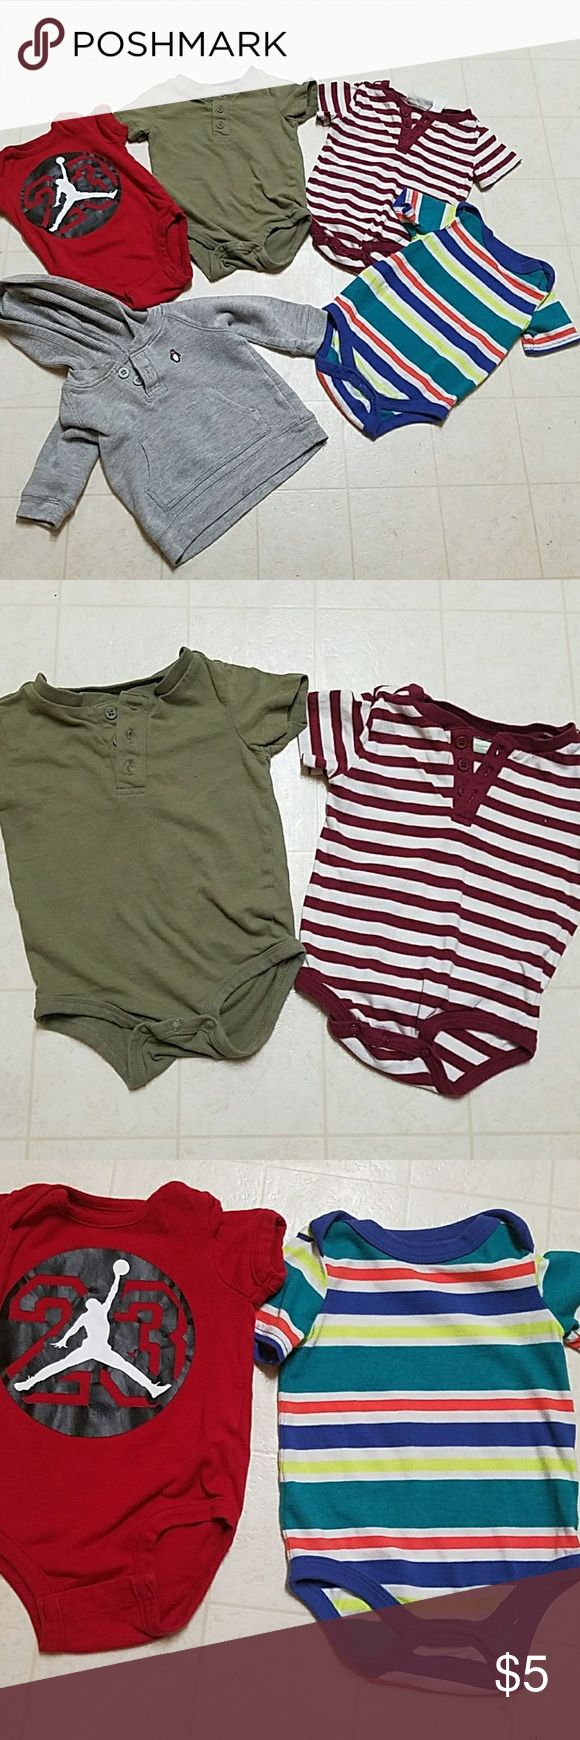 Bundle of boys tops Bundle contains 4 onesies and 1 hooded top. All are in size three to six months. The grey hooded top is made by Carter's. The Michael Jordan is made by Michael Jordan apparel. The multicolored onesie is made by Circo. The solid green and maroon and white striped onesie are made by first impressions. Will not separate bundle. mixed Shirts & Tops